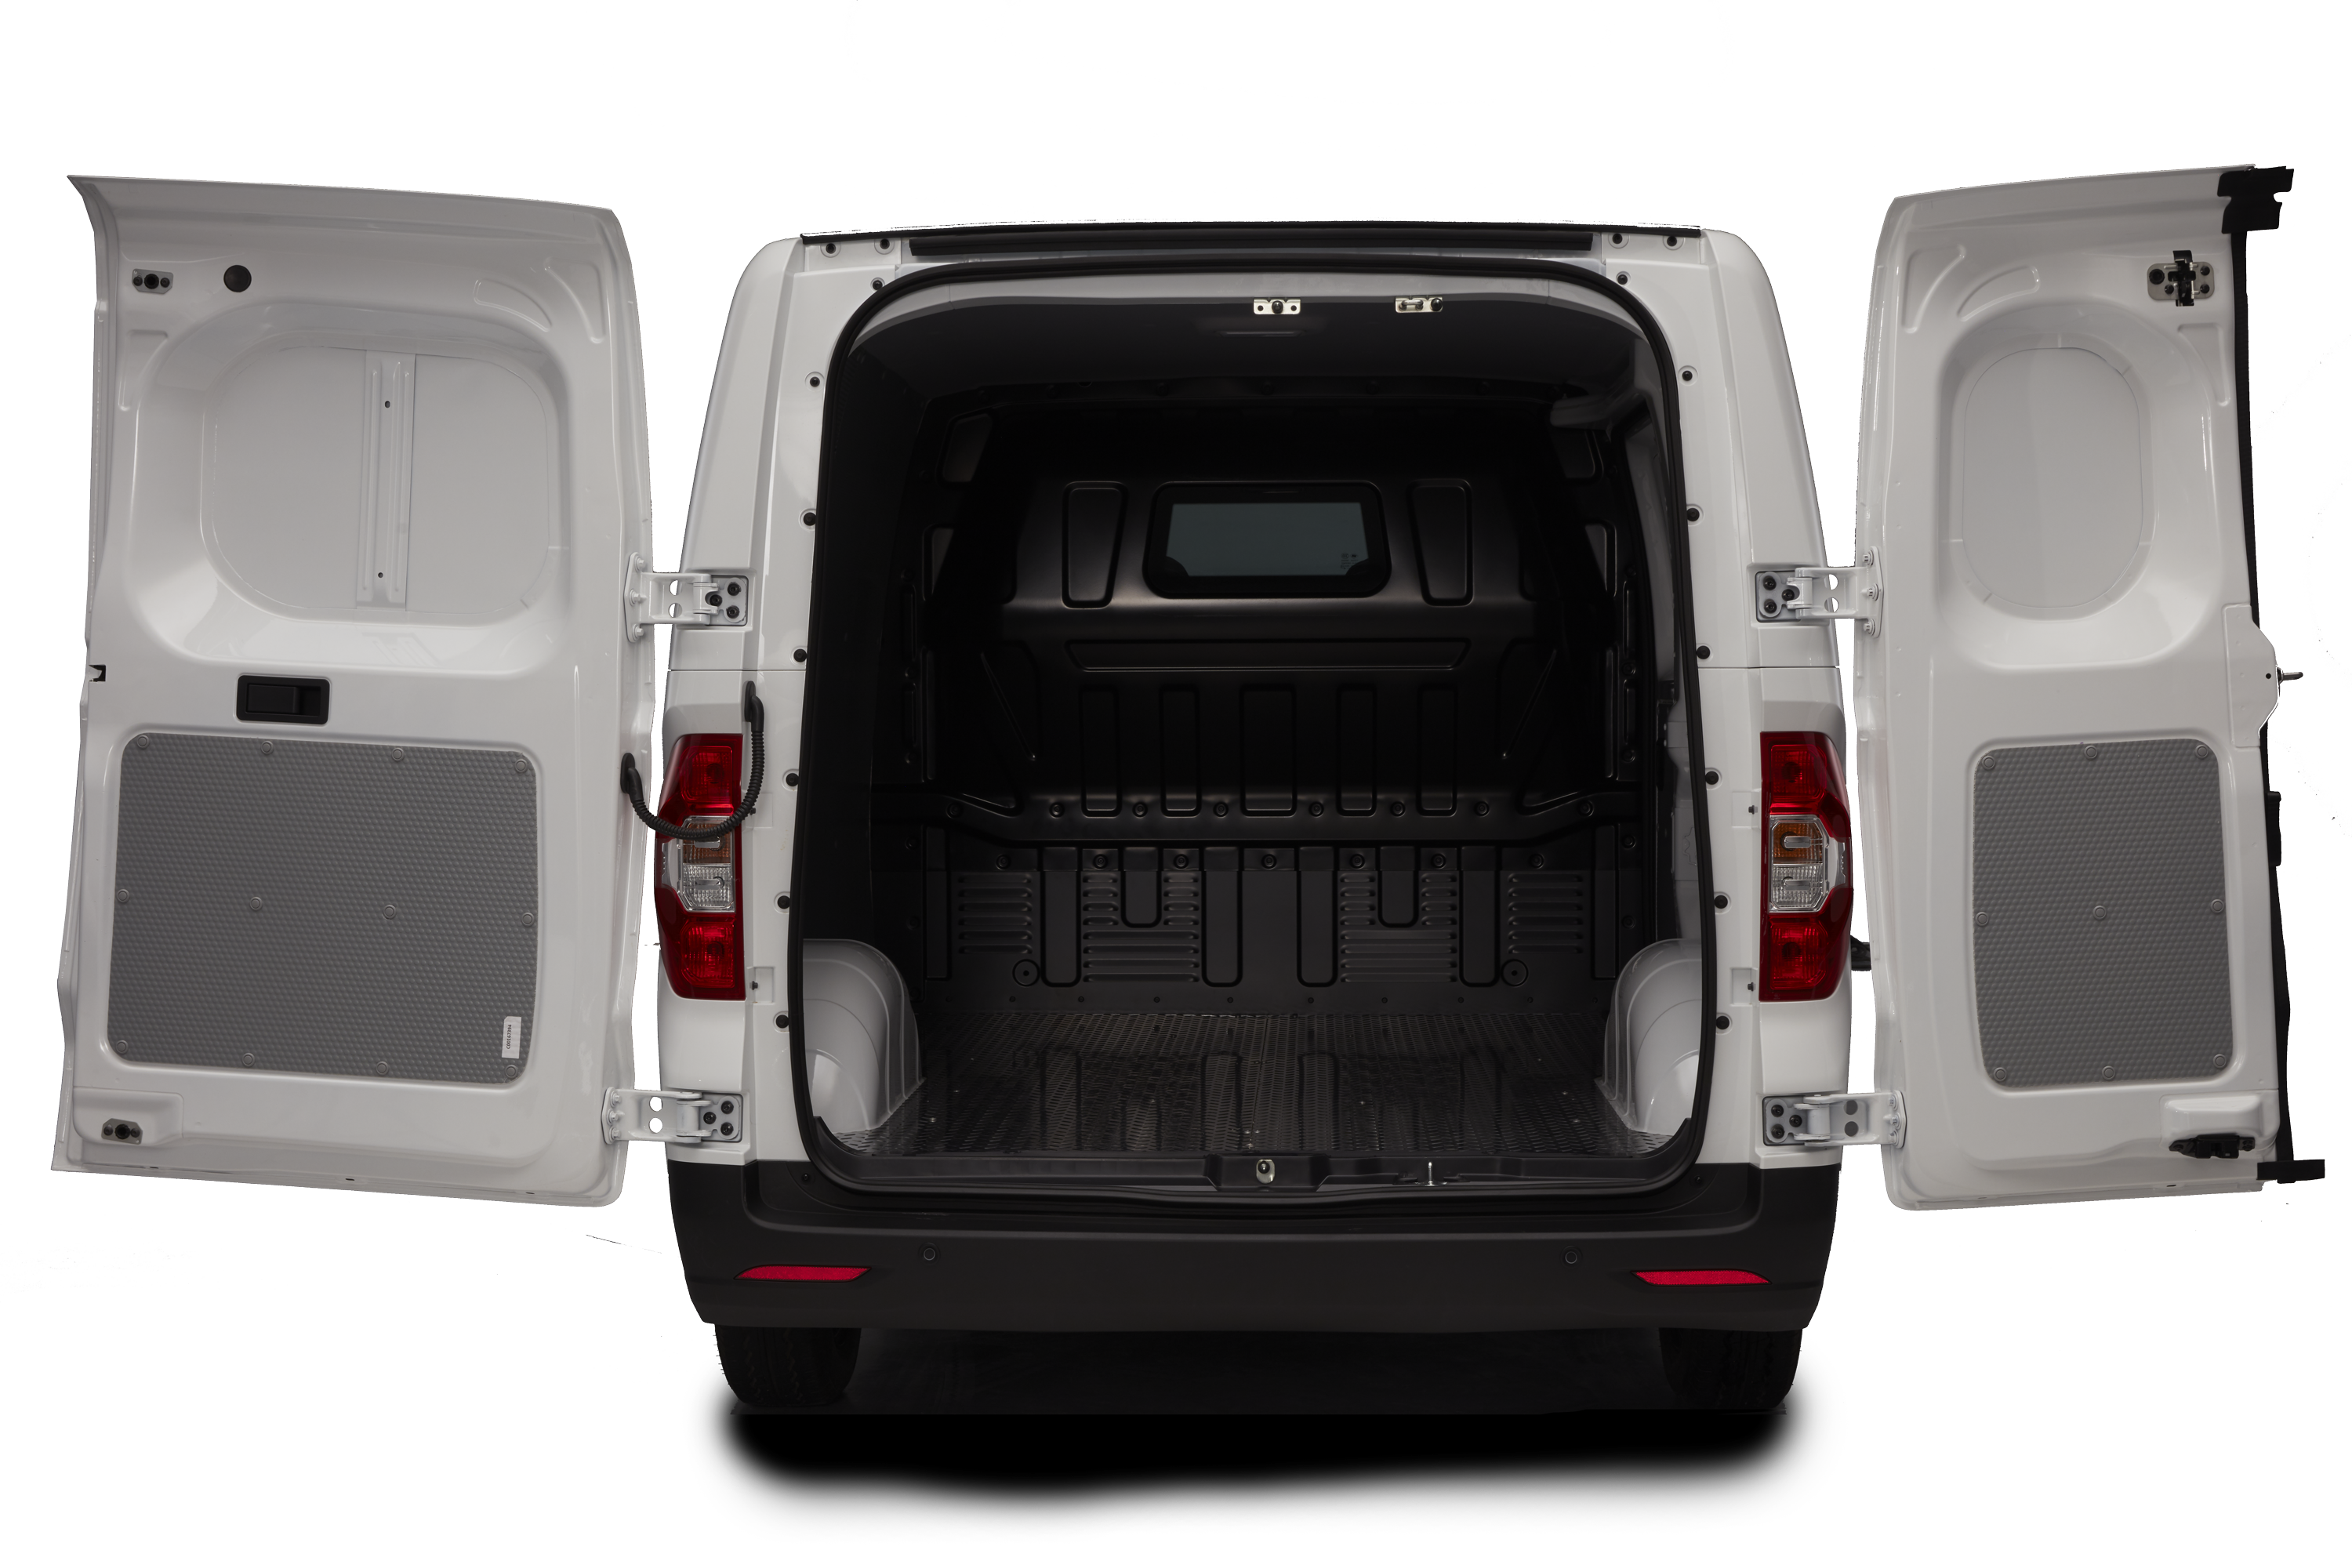 e Deliver 3 - rear barn doors open (standard)